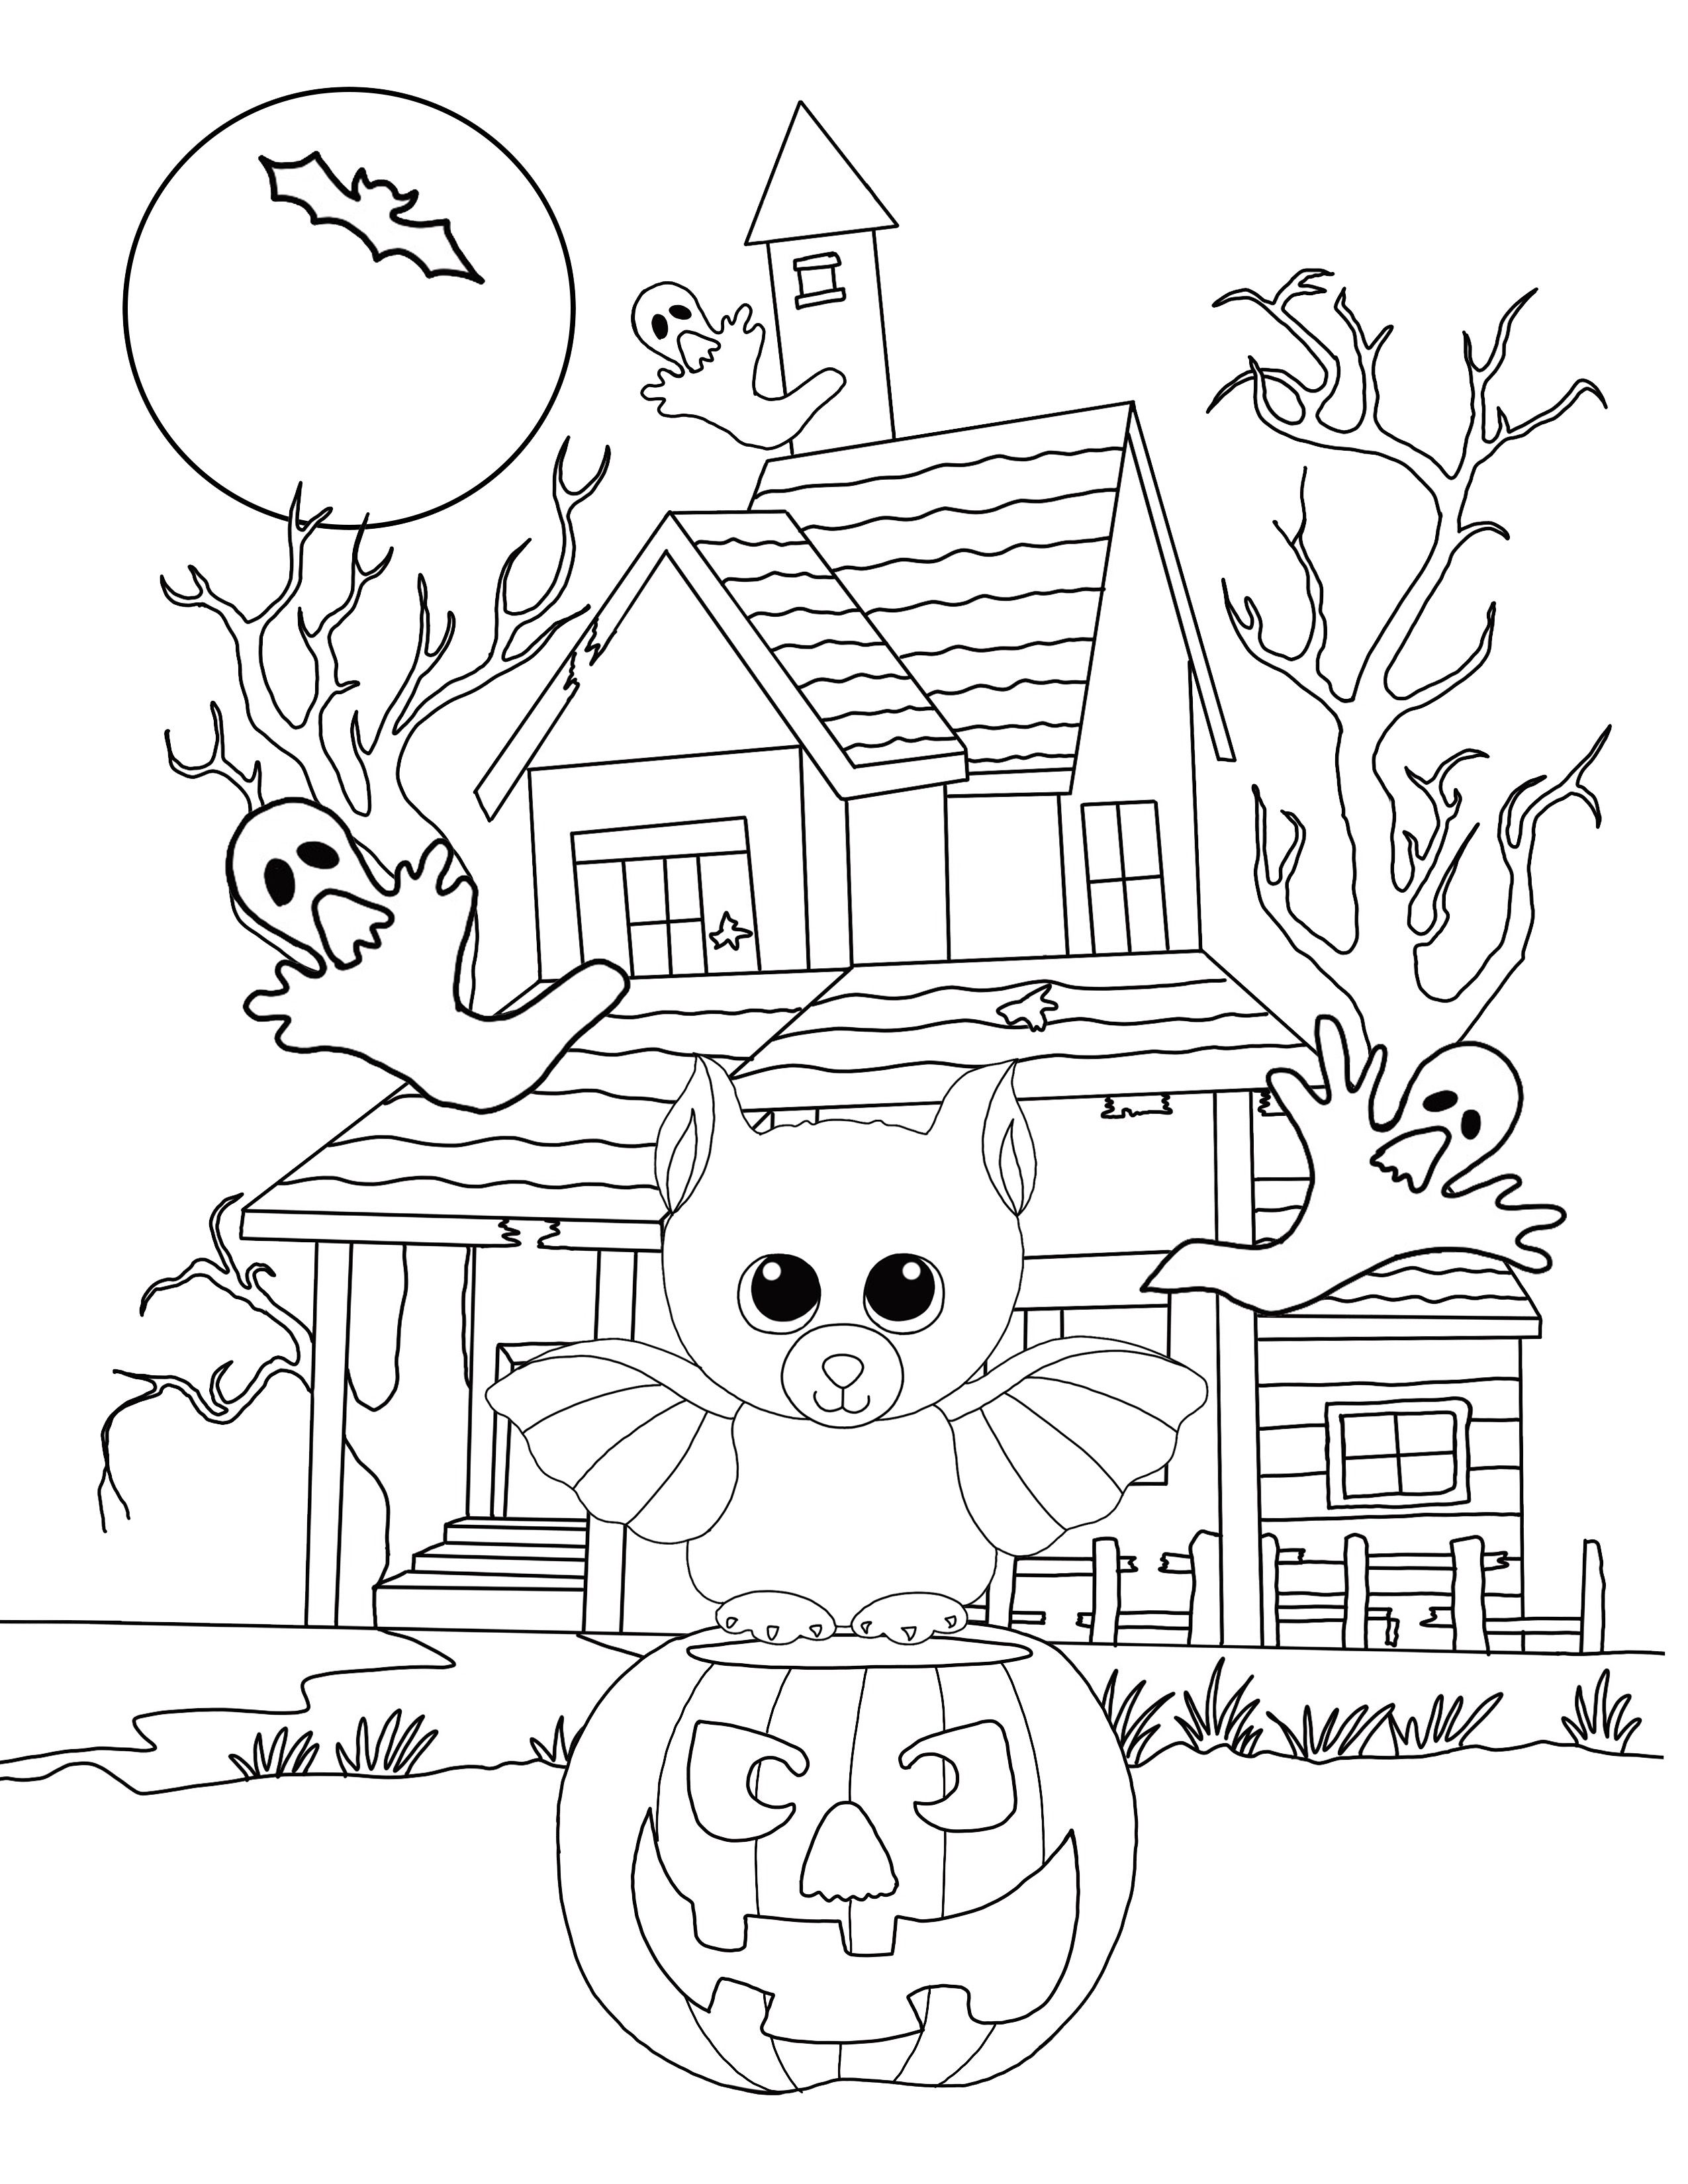 halloween teddy bear coloring pages | Beanie Boo Coloring Pages | Toys Coloring Pages ...